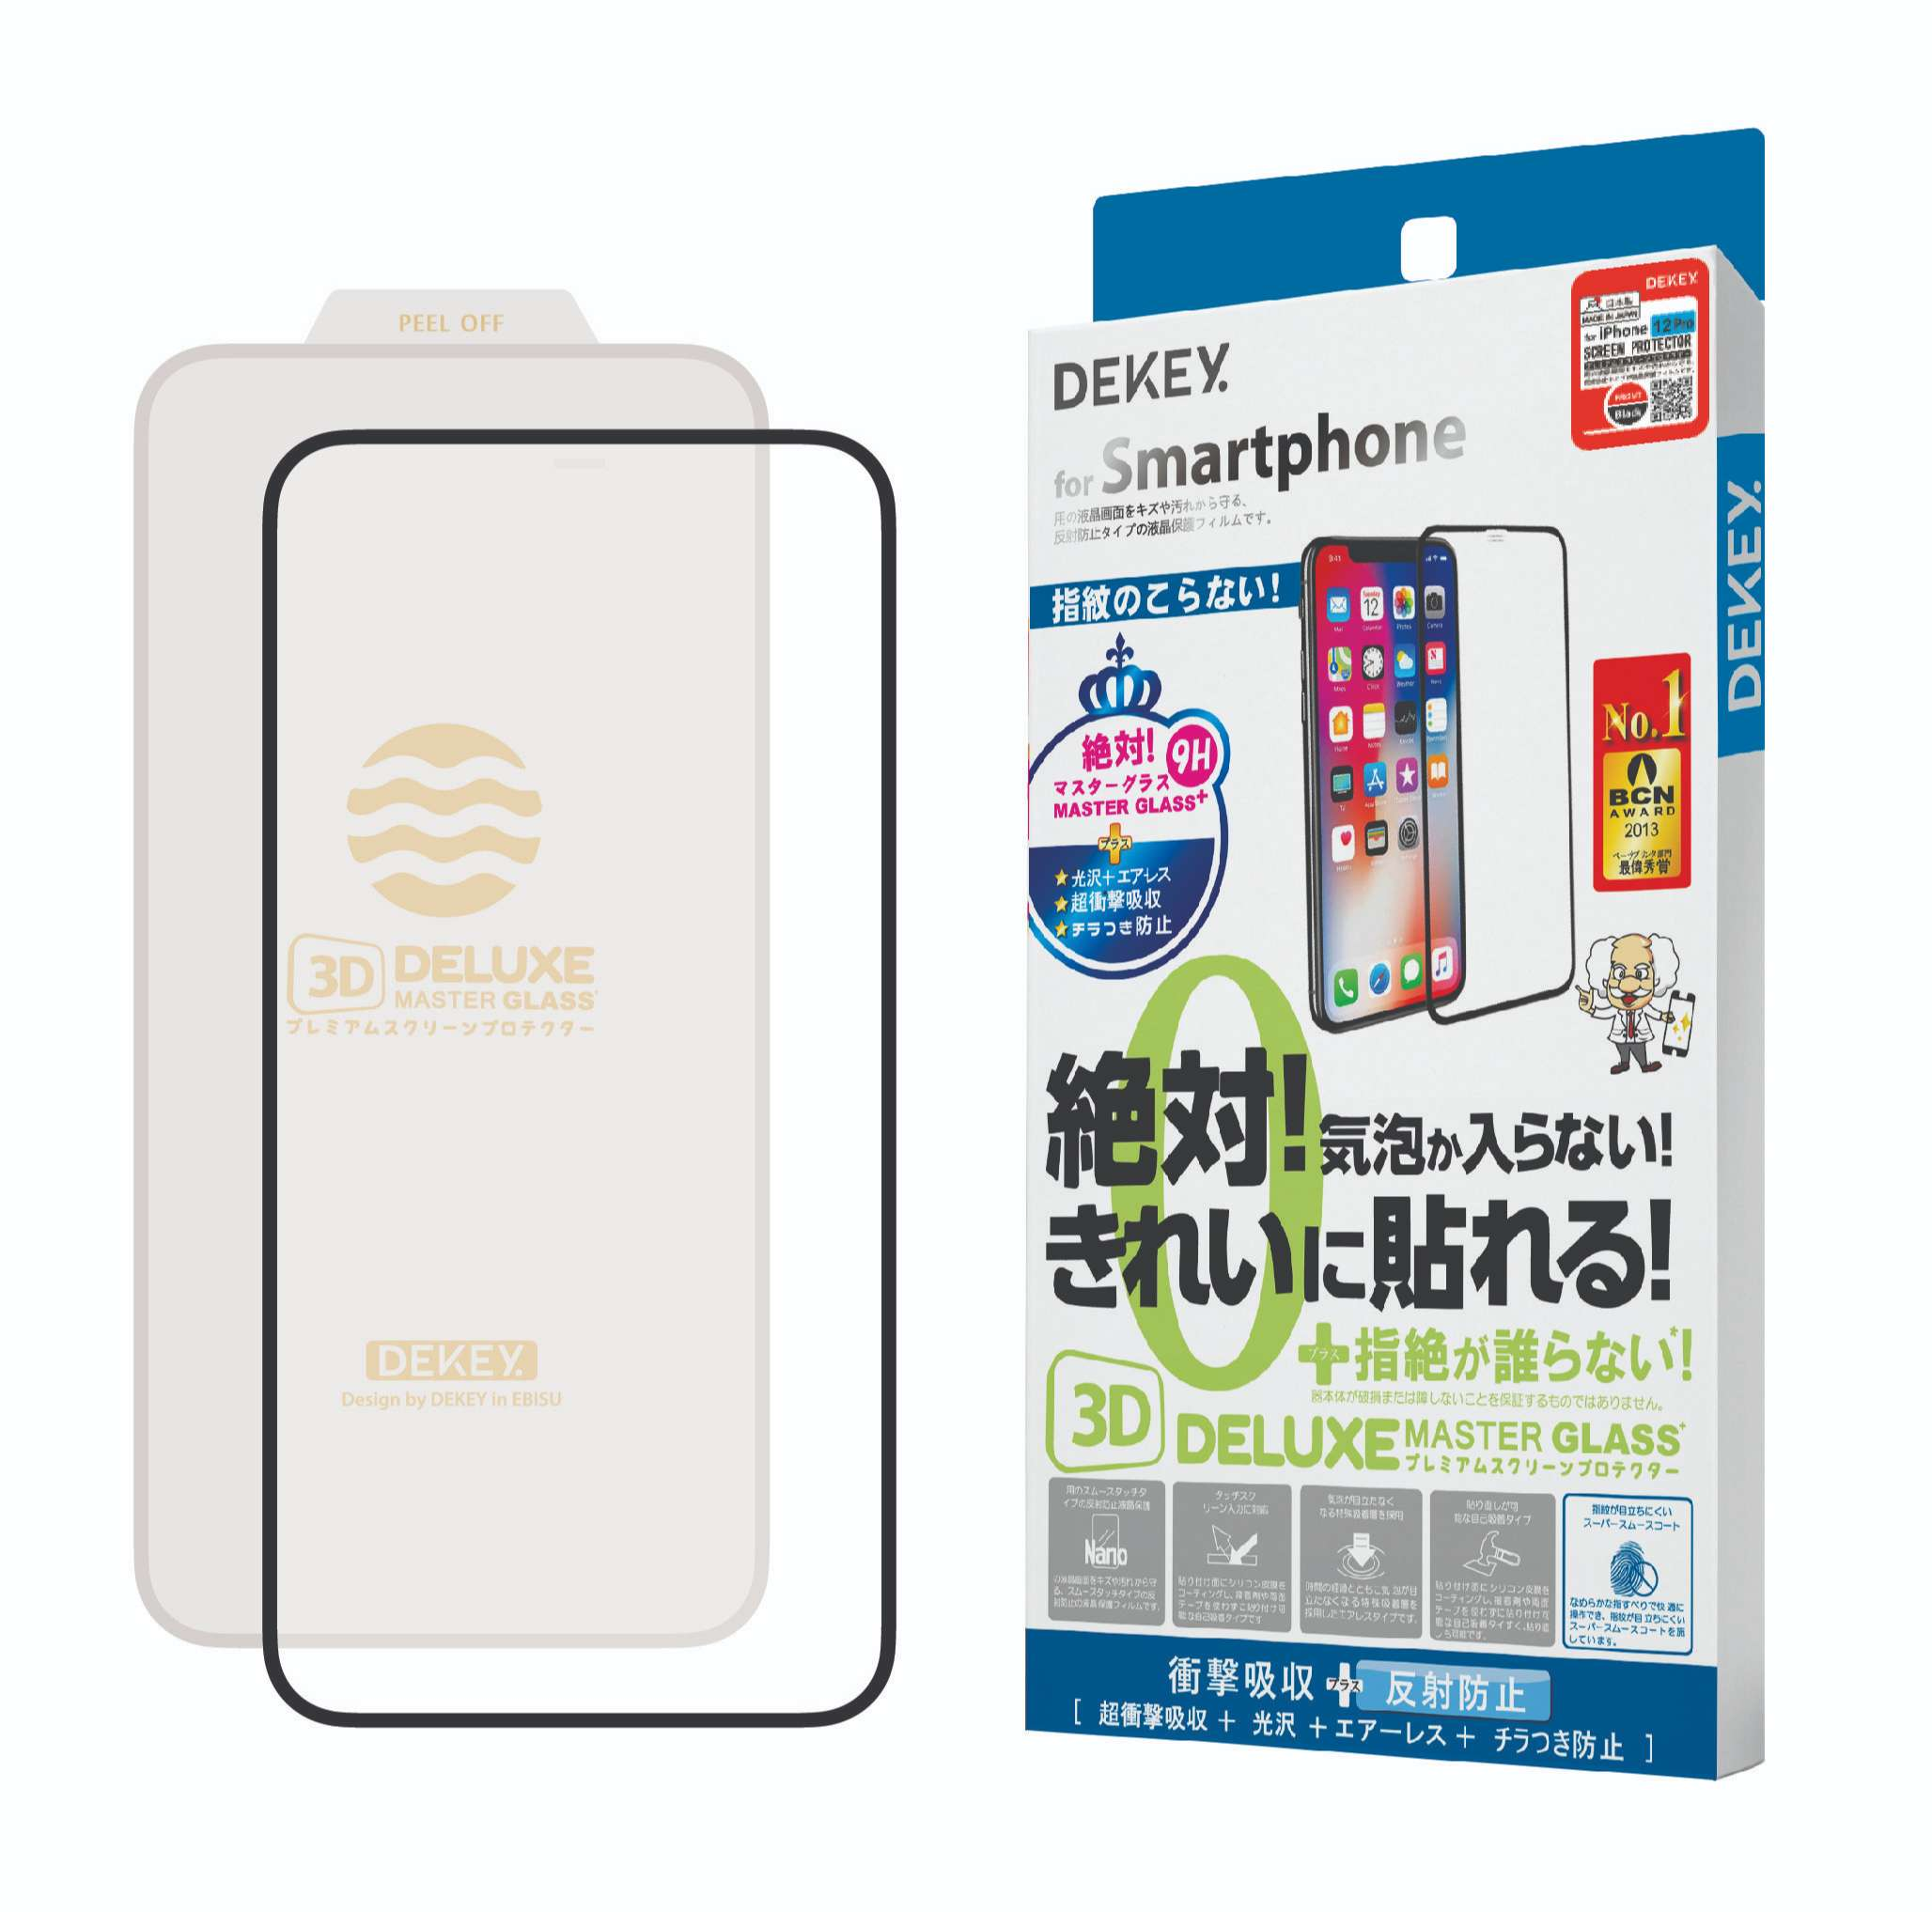 Miếng Dán Dekey Full 3D Master Glass Deluxe iPhone 6.1''